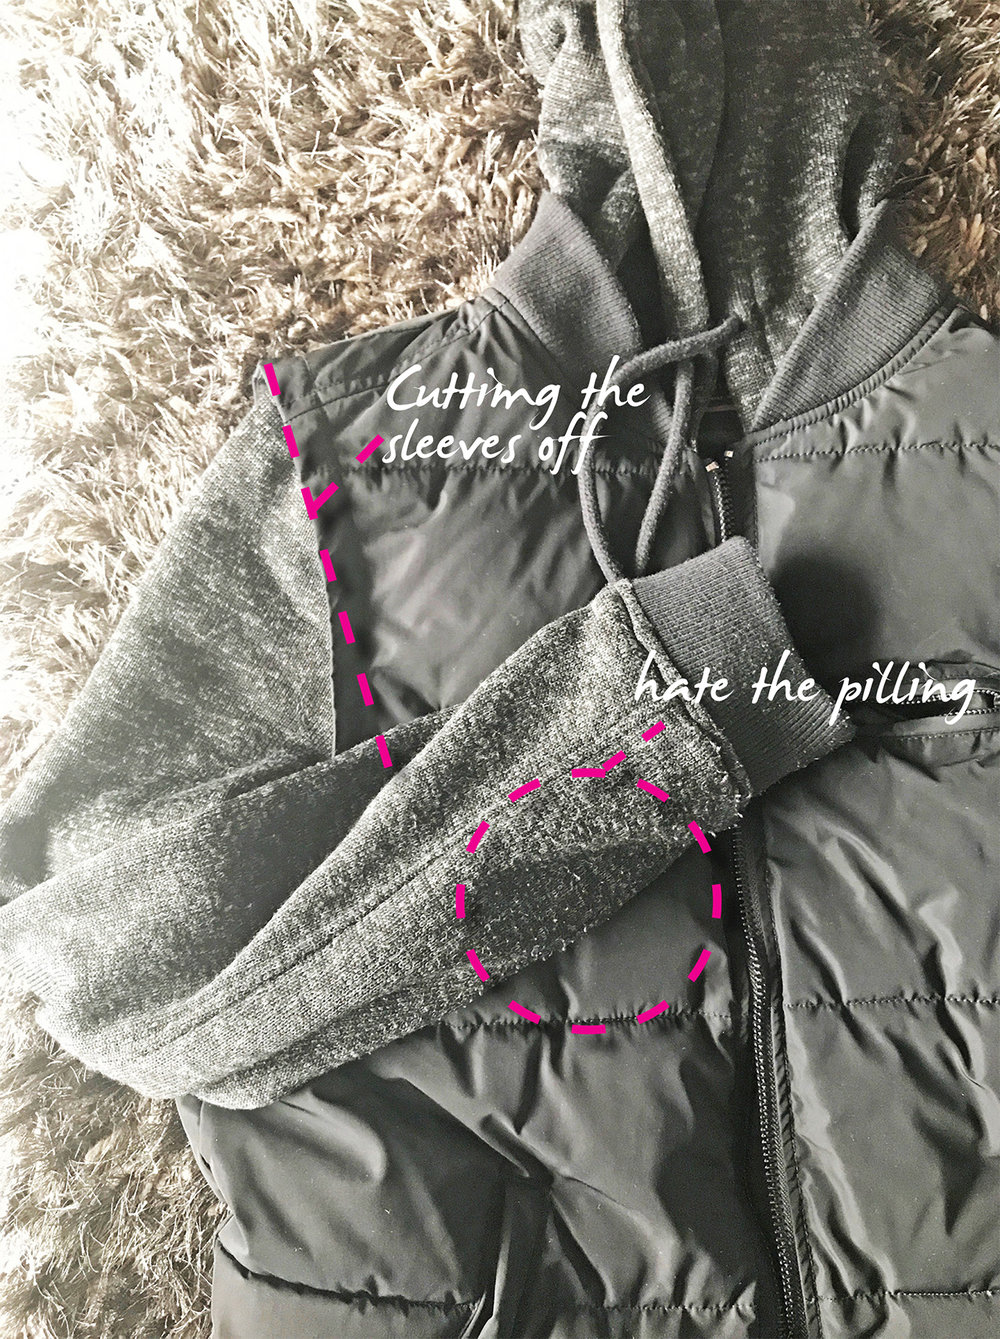 A bit of DIY so I could use a winter jacket for those summer-nights when the temperature dips